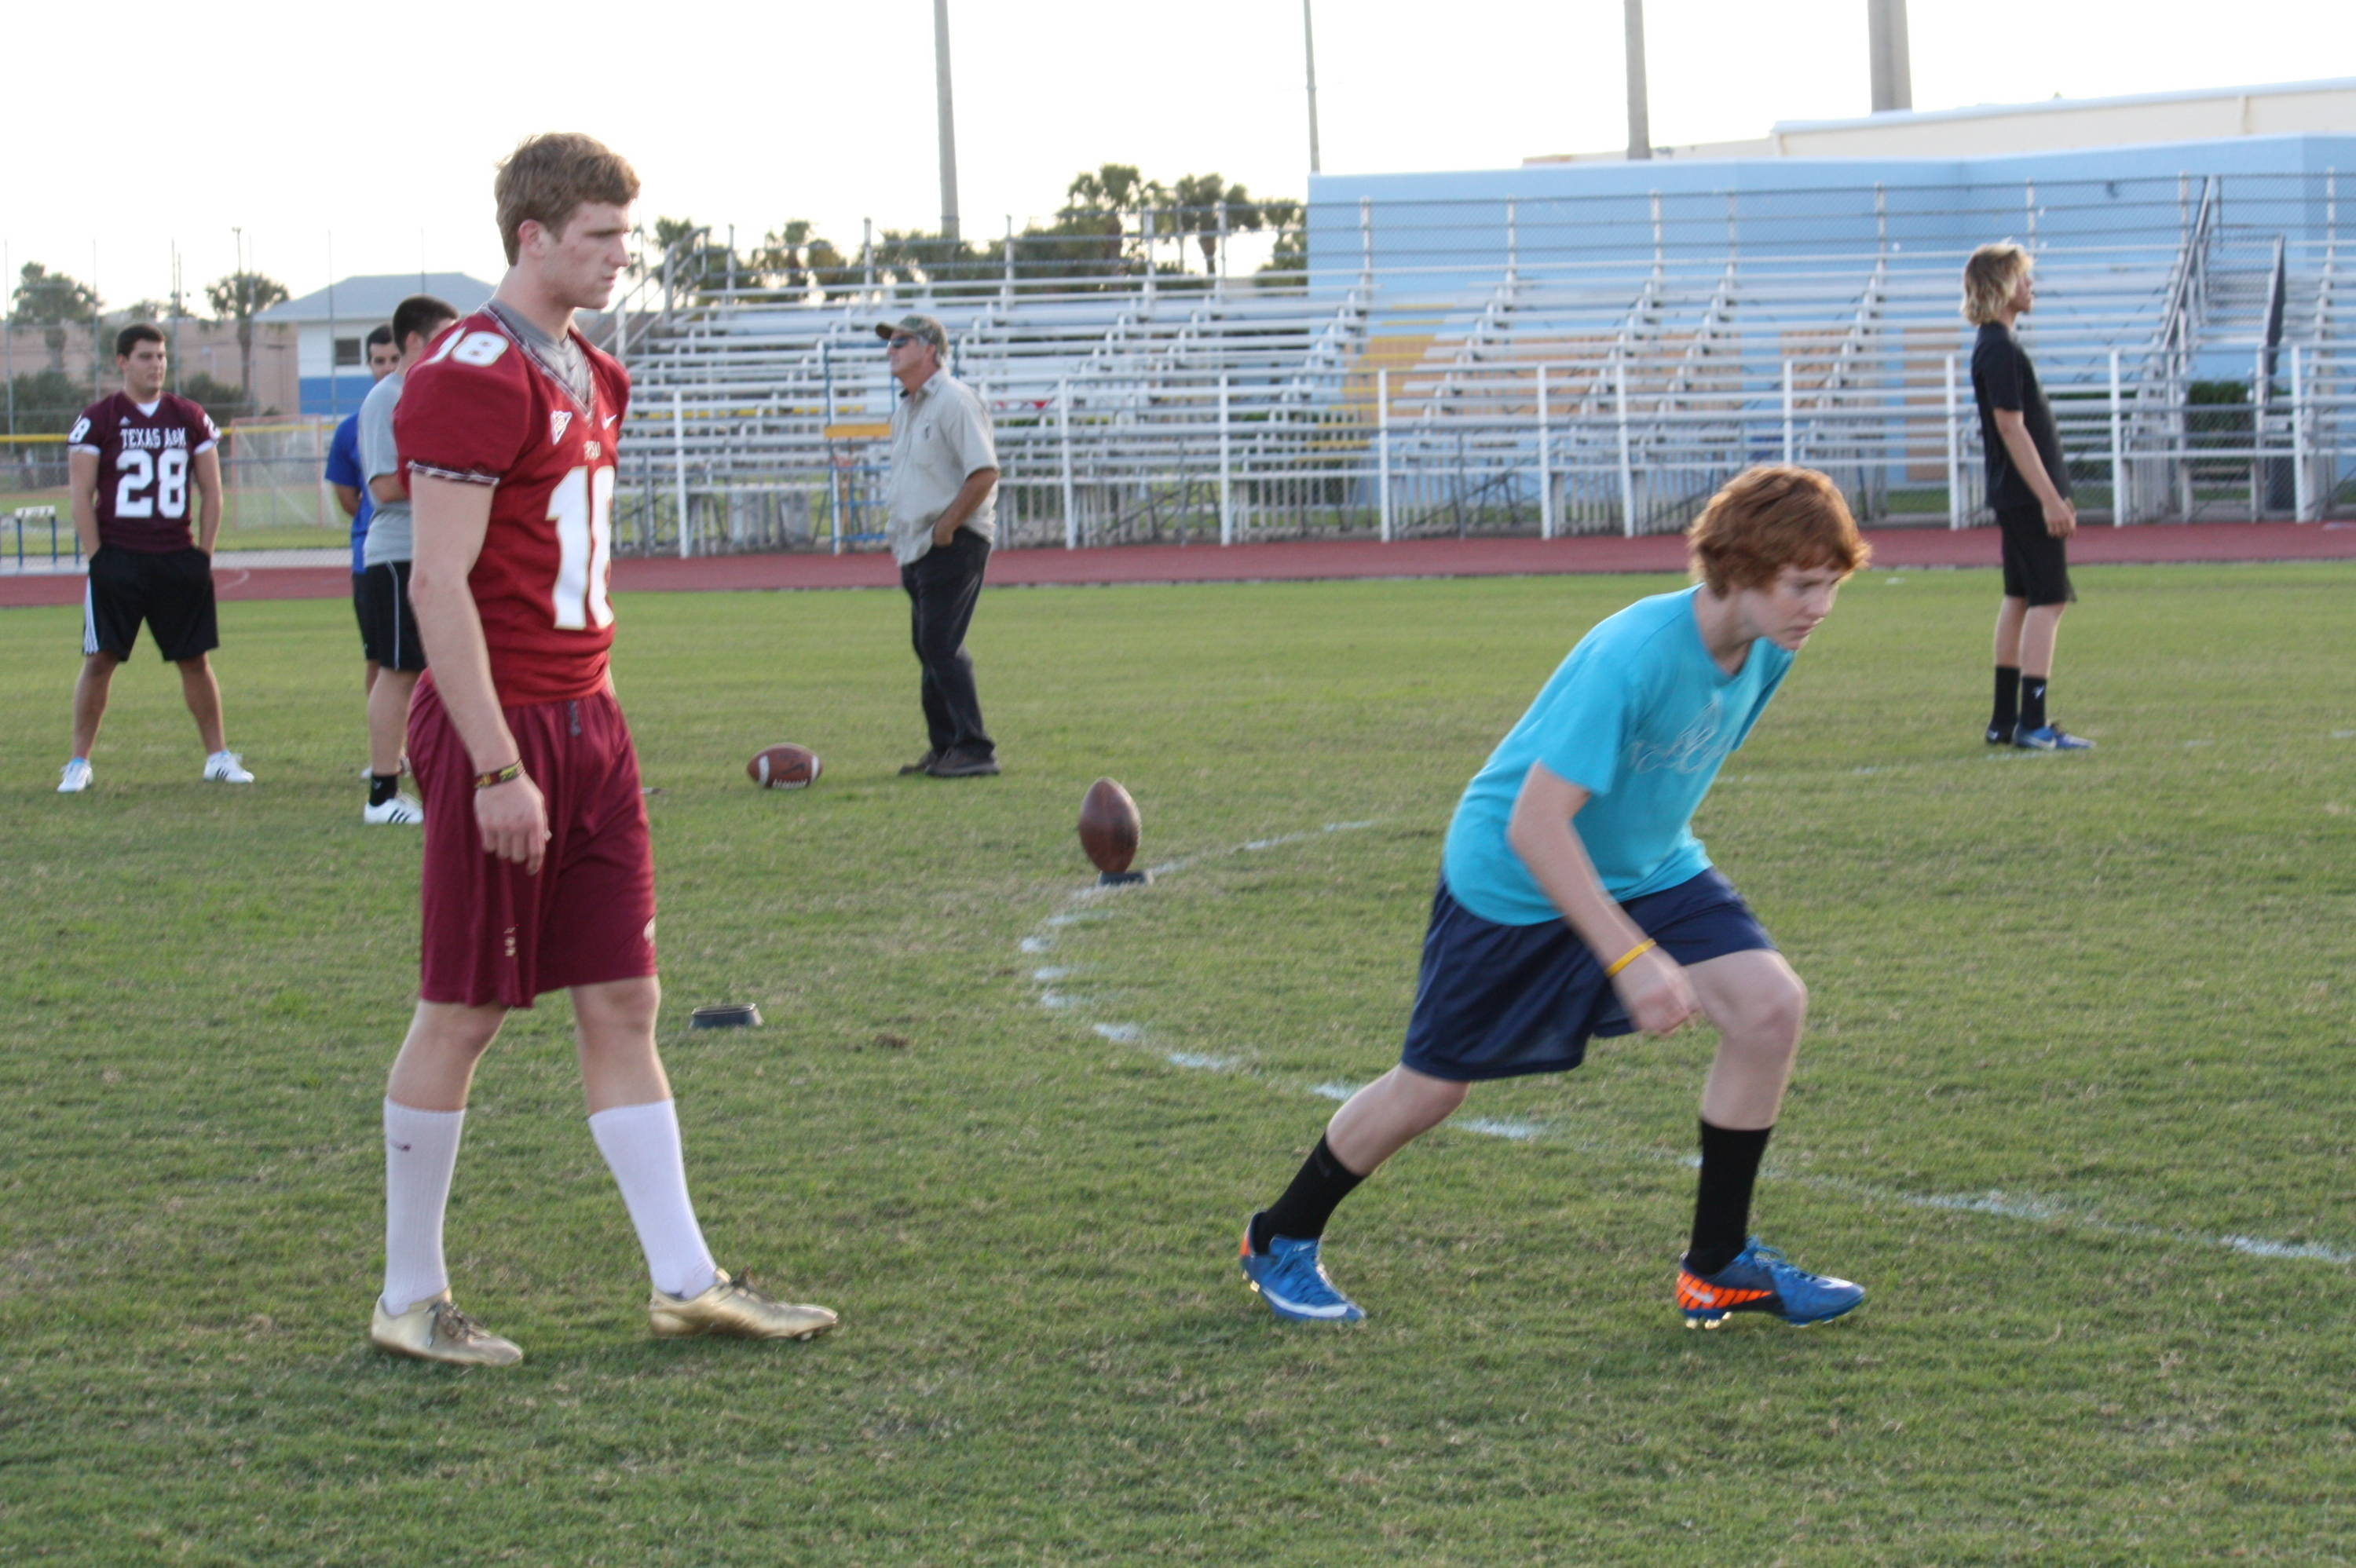 Dustin casts a watchful eye over a youngster working on his kickoff approach.